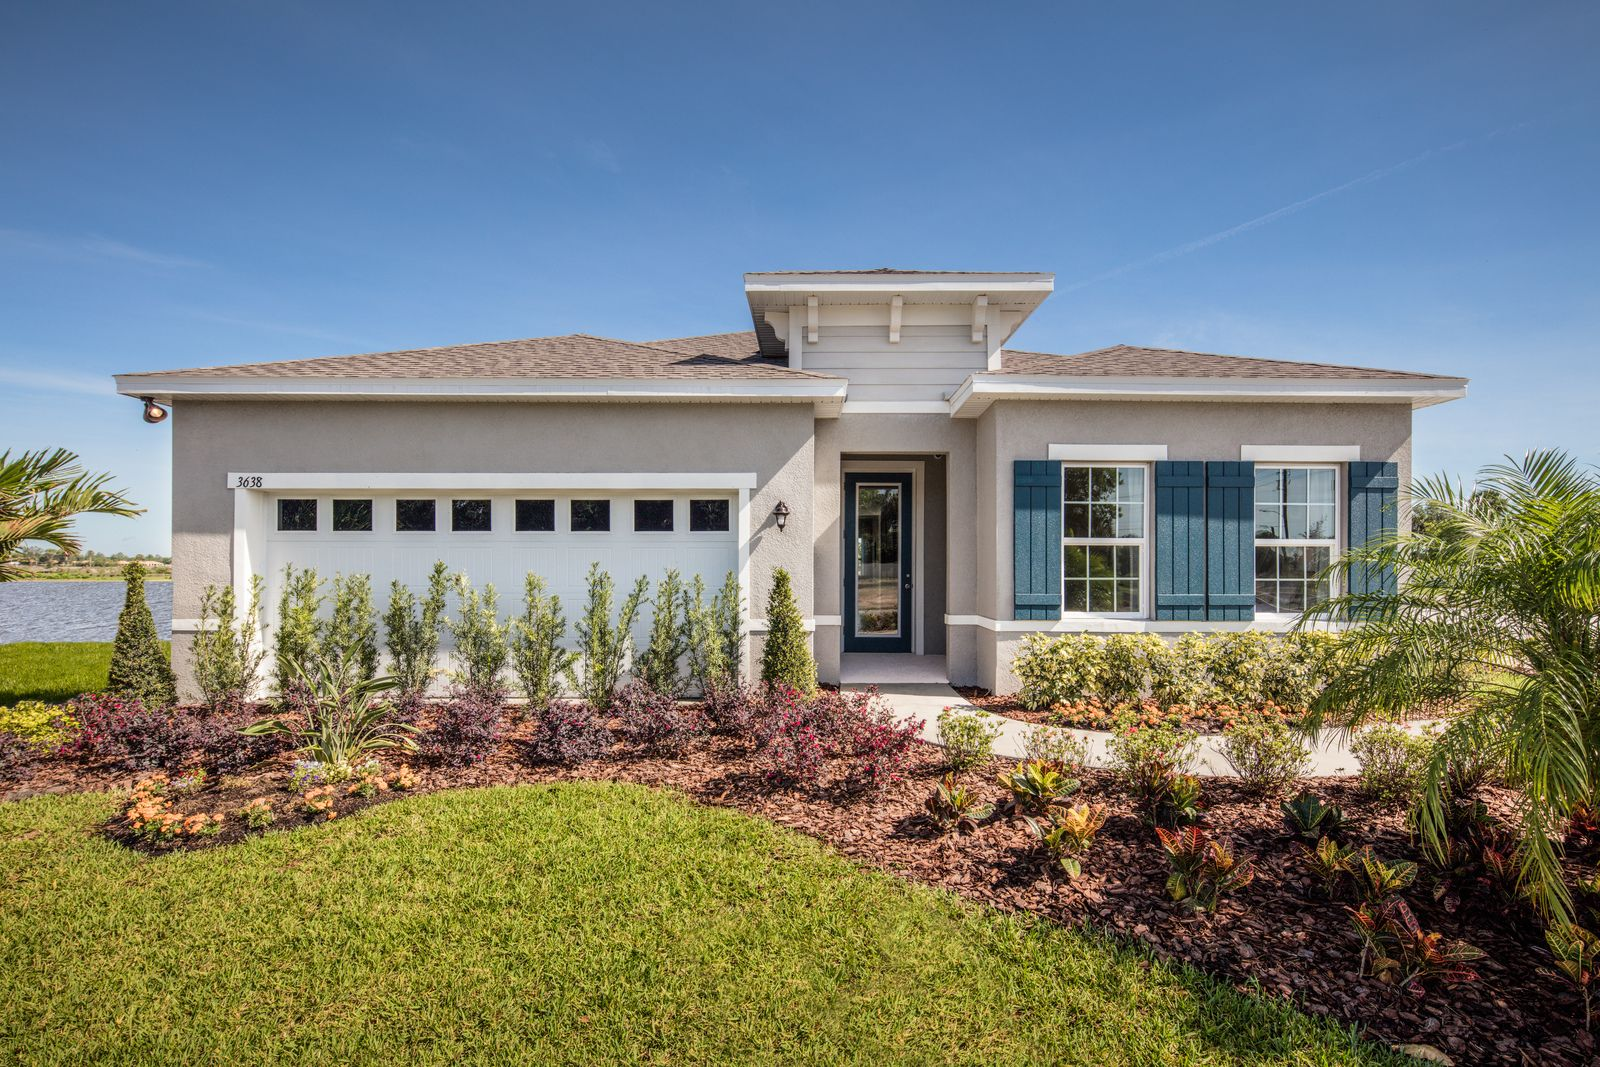 NEW SINGLE FAMILY HOMES IN ST LUCIE COUNTY NOW SELLING IN PHASE 4:Now Selling! Skip the waitlist and visit Crosstown Commons today for pre-construction pricing and learn about our eight all-new floorplans.